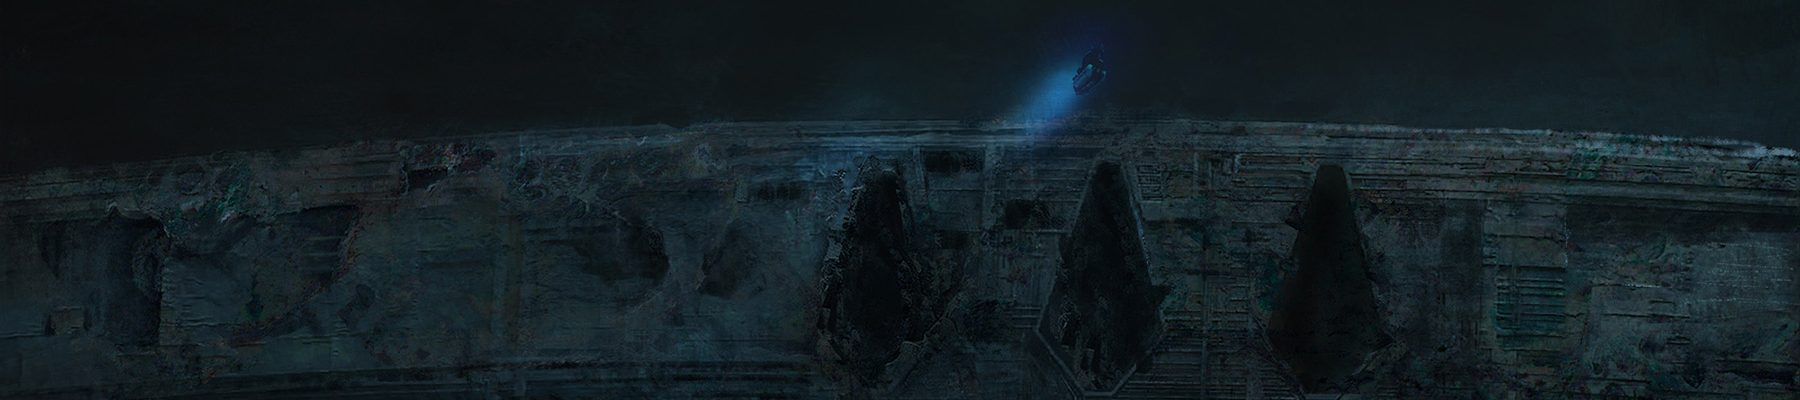 Thomas Pringle - Pringleart - Concept Art - Transformers The Last Knight